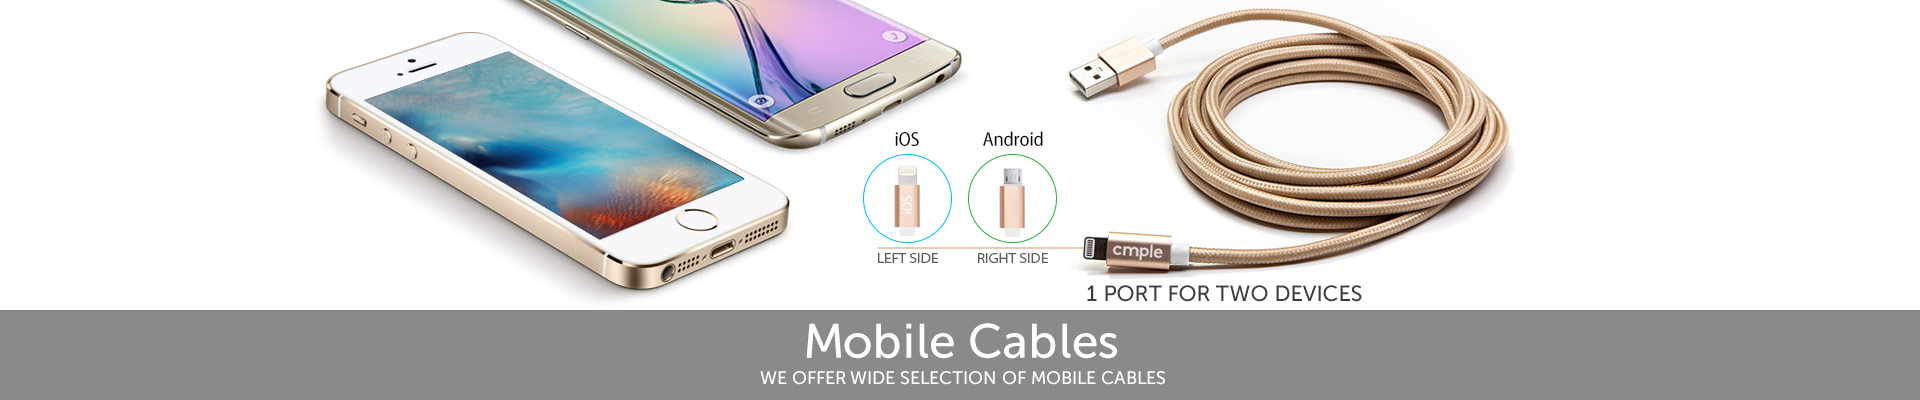 cmple mobile cables